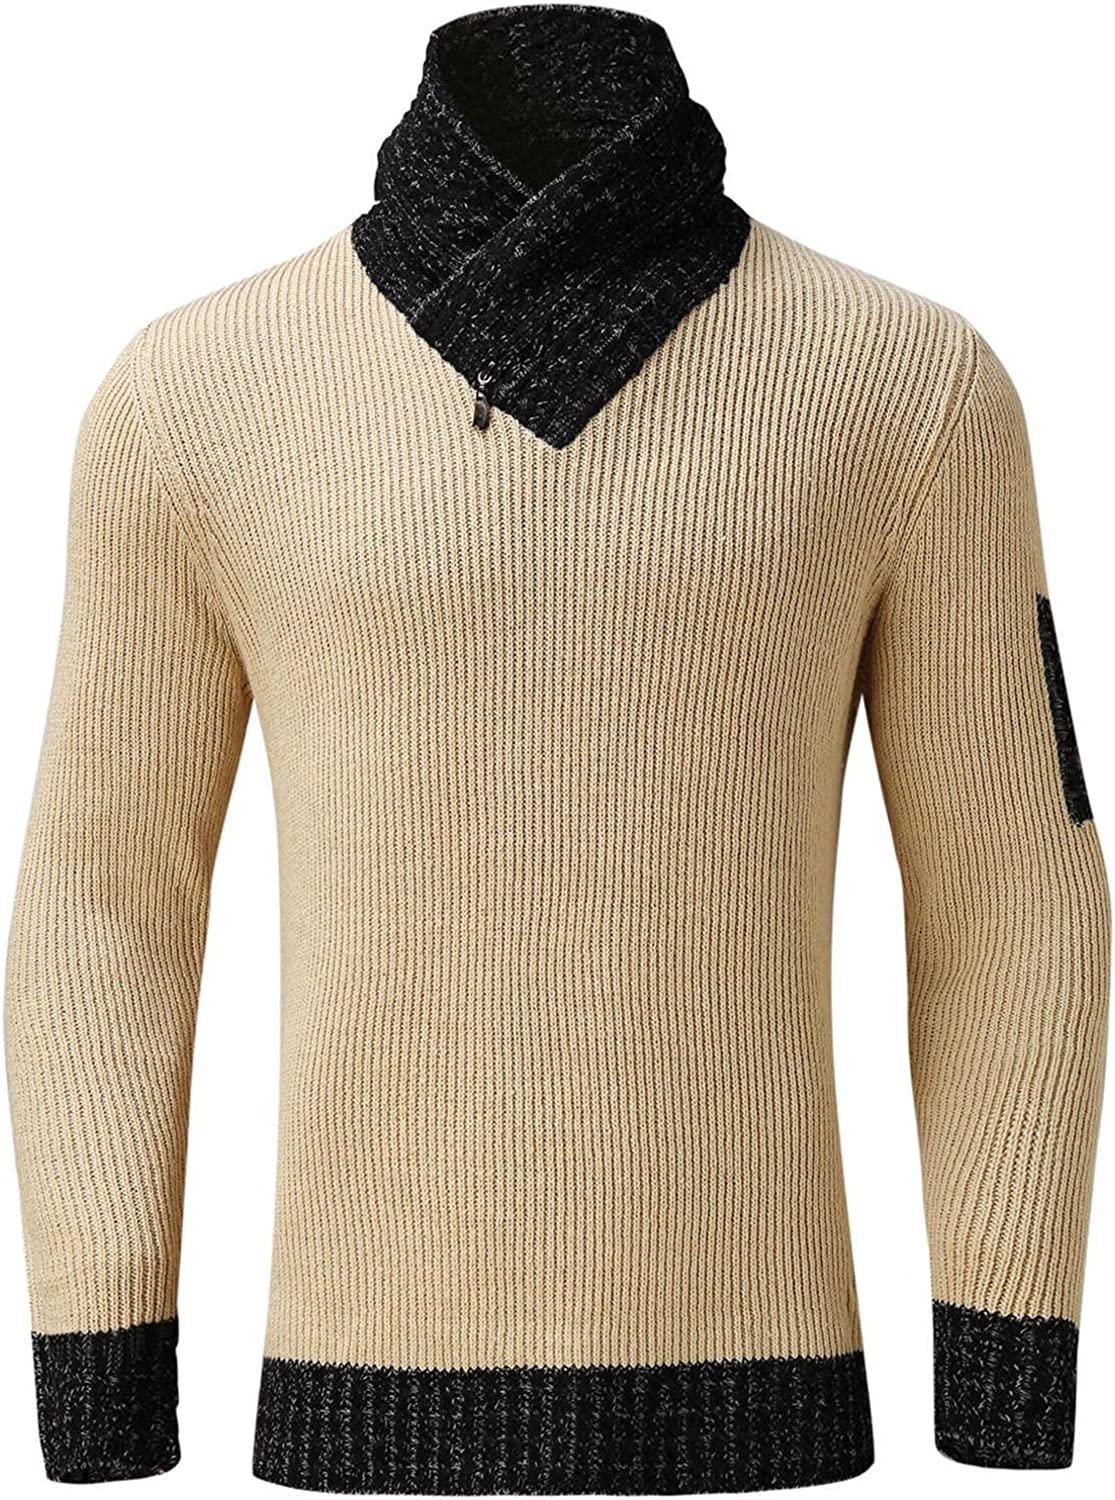 Huangse Mens Shawl Collar Sweater Casual Slim Fit Turtleneck Sweater Cable Knit Jacket Thermal Pullover Sweaters